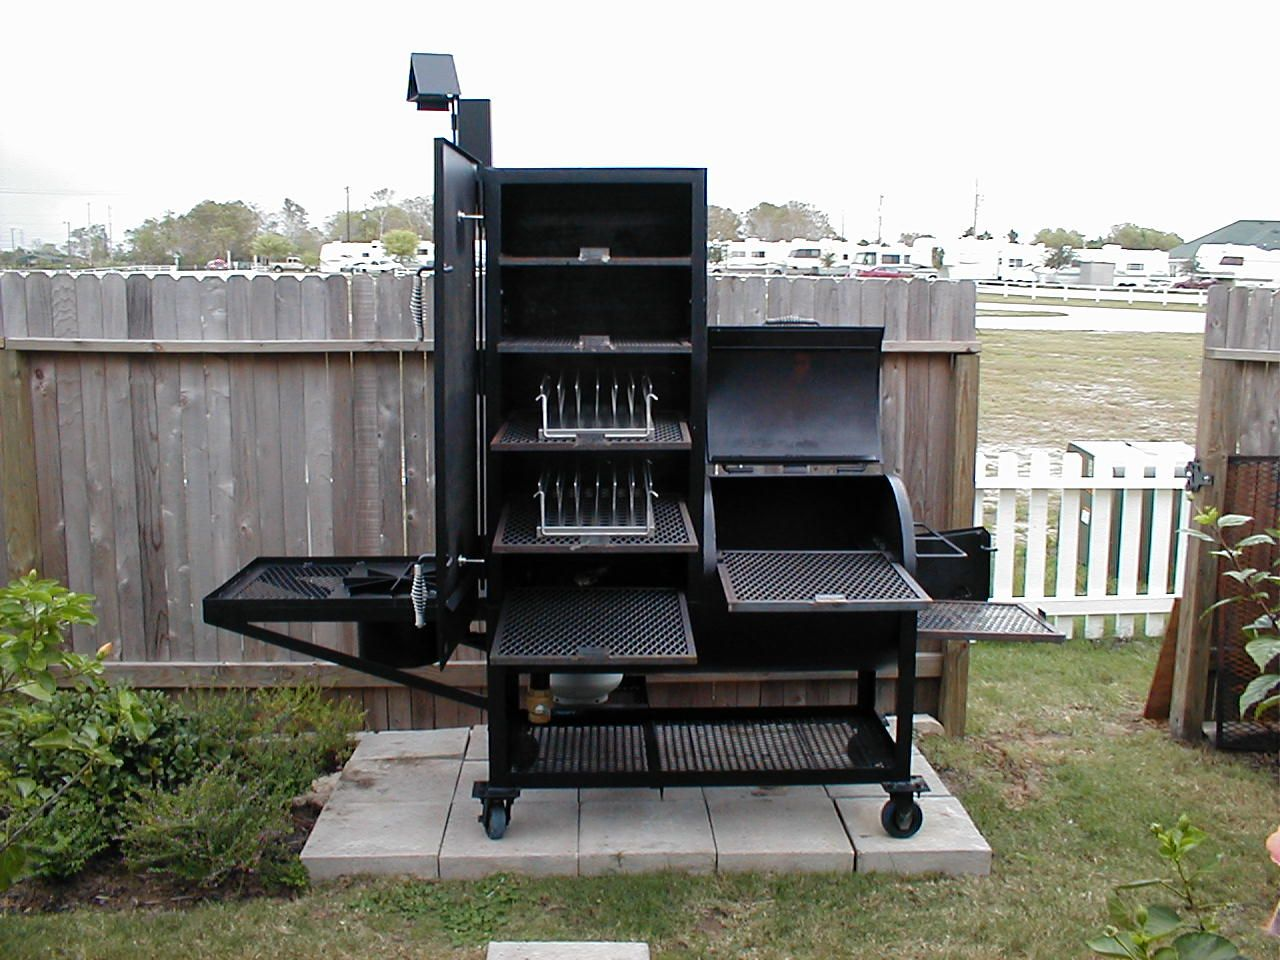 Außenküche Mit Smoker : Image detail for gator pit of texas upright water smoker and